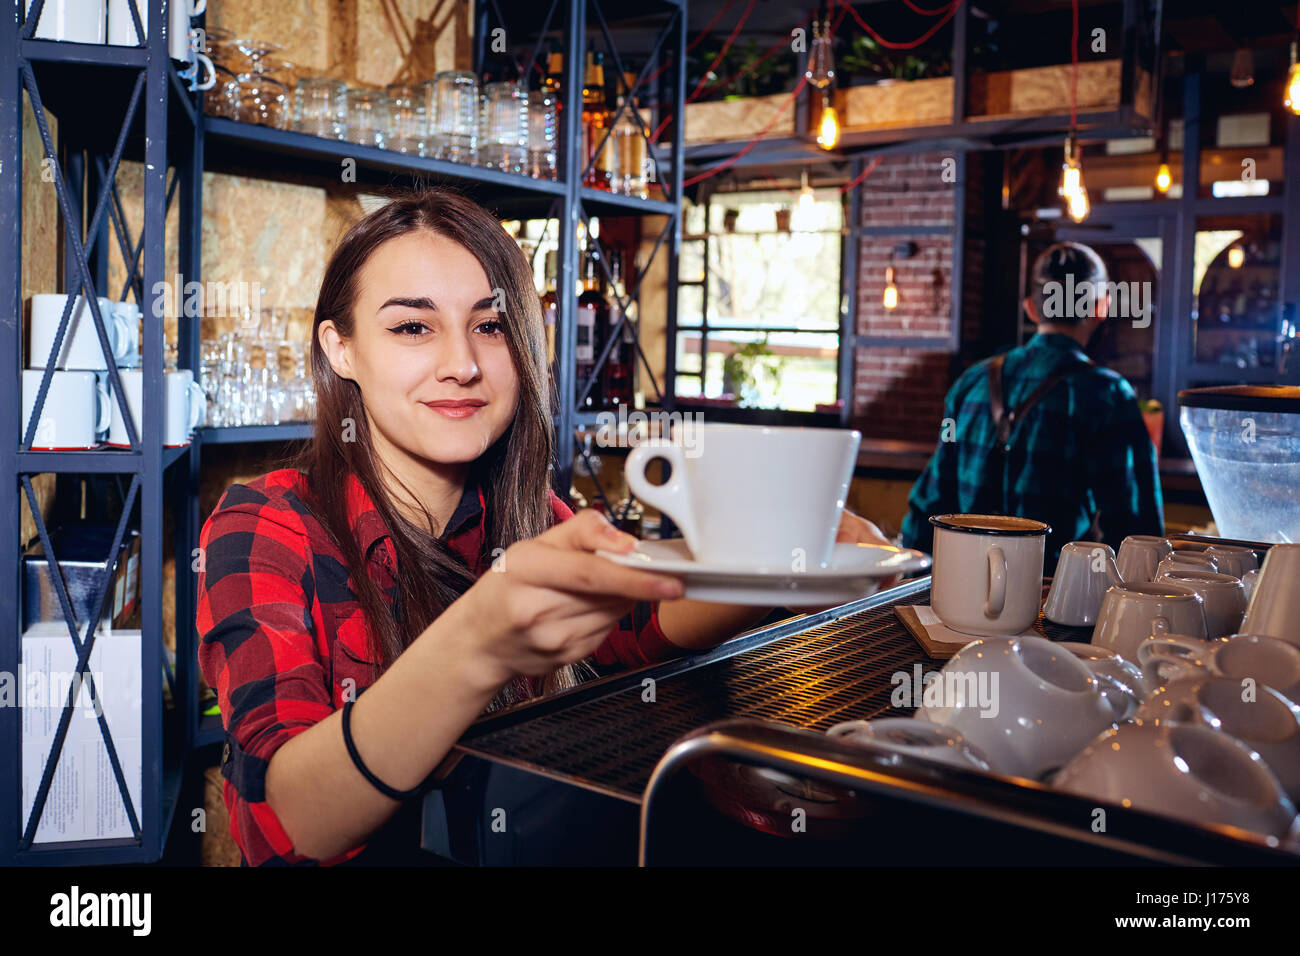 The barman girl works at bar in  restaurant - Stock Image